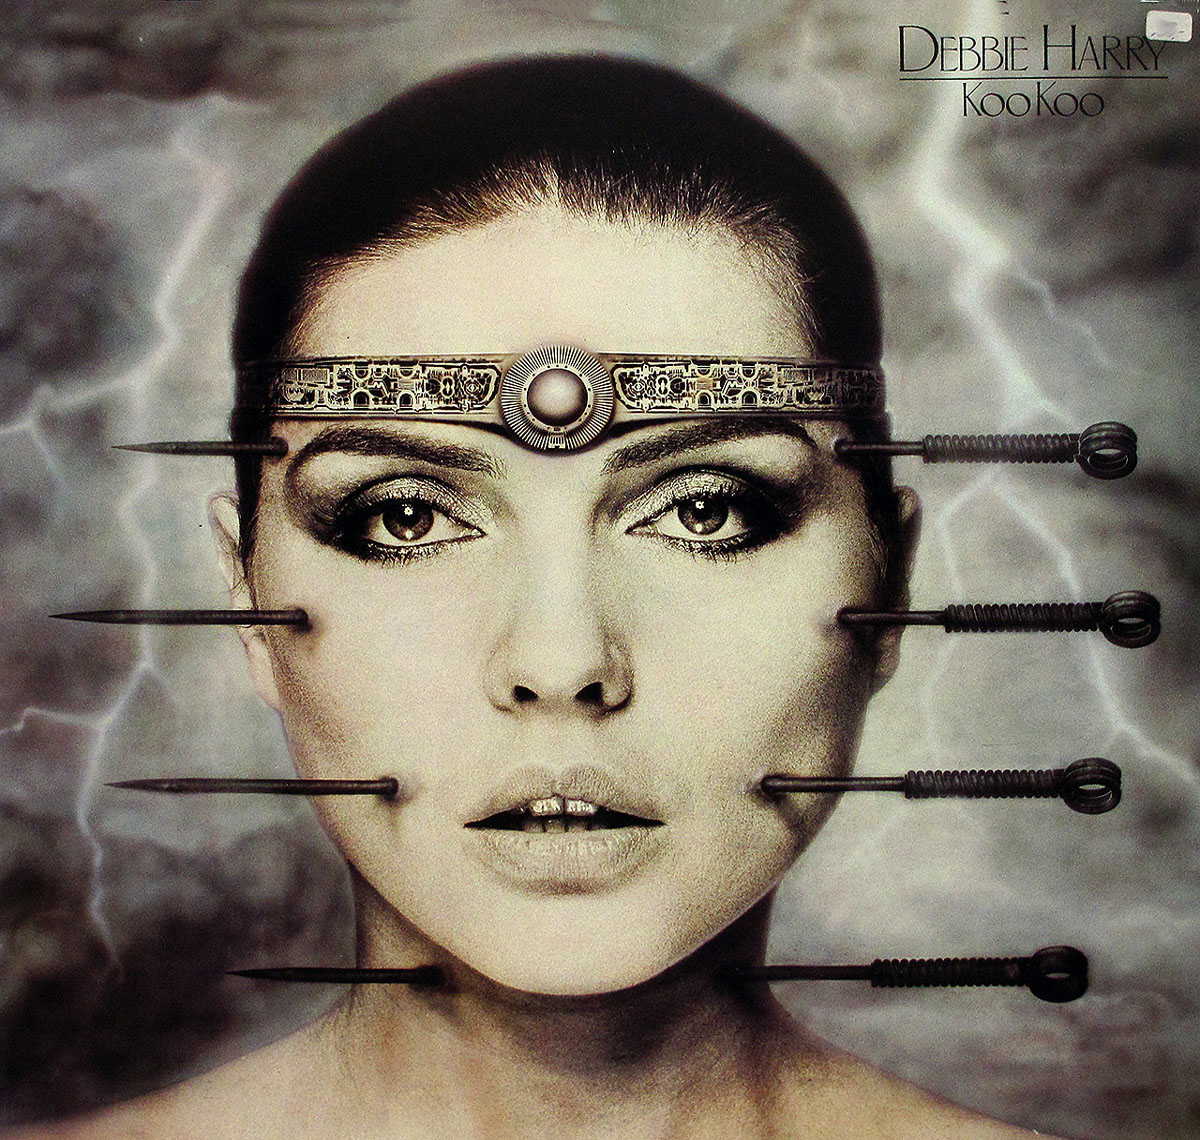 High Resolution Photo #10 debbie harry kookoo